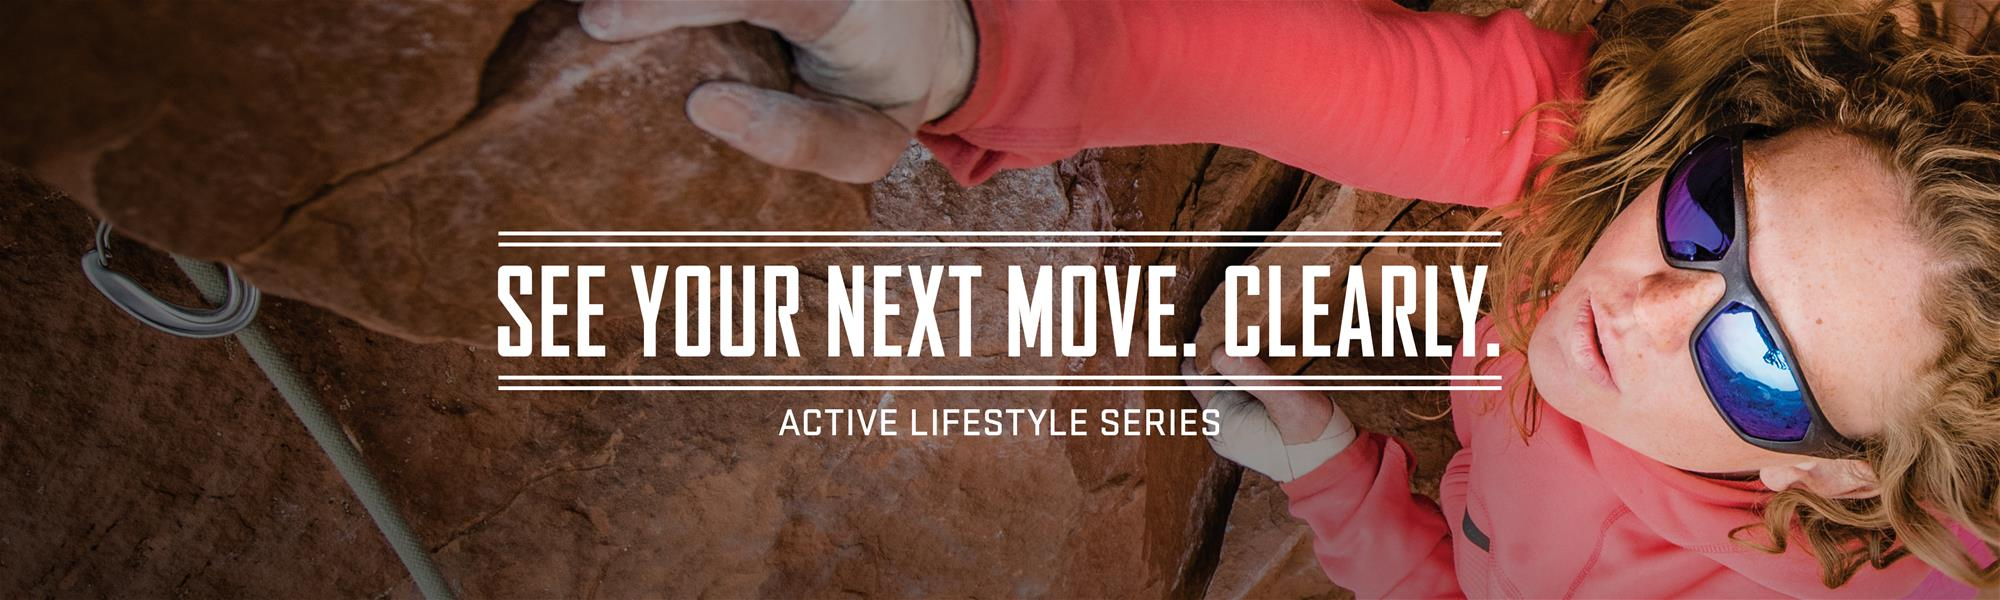 Active Lifestyle Series